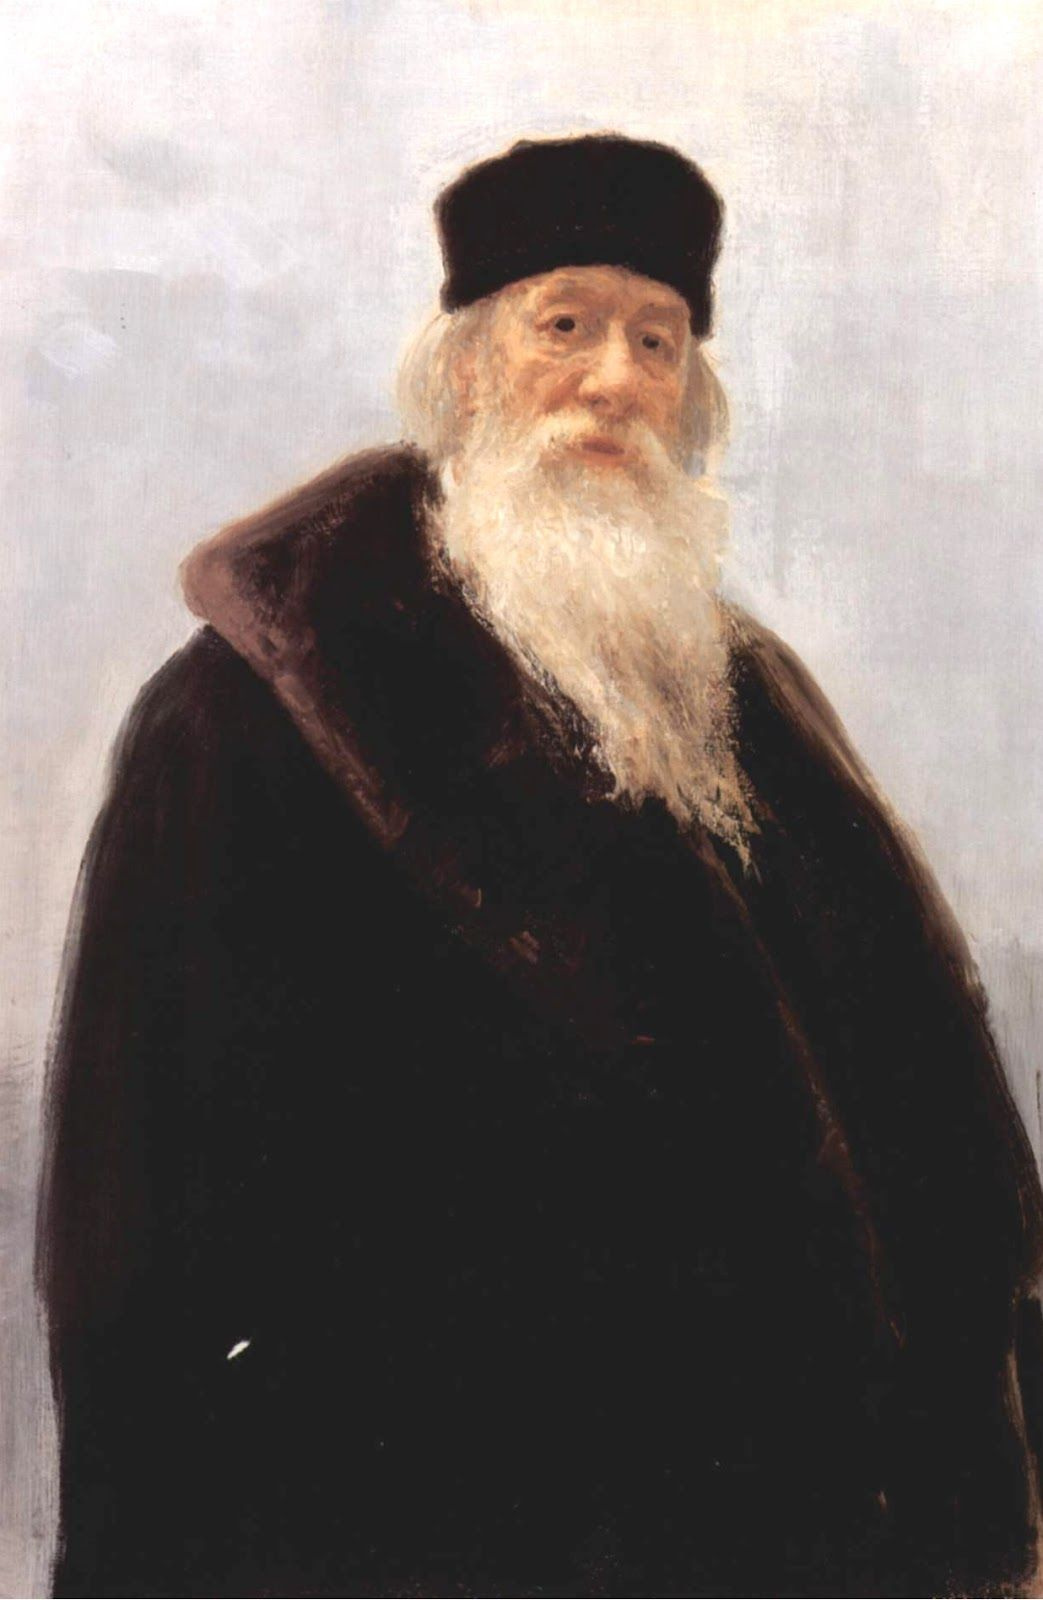 Ilya Efimovich Repin. Portrait of Vladimir Vasilievich Stasov, art and music critic, historian of art